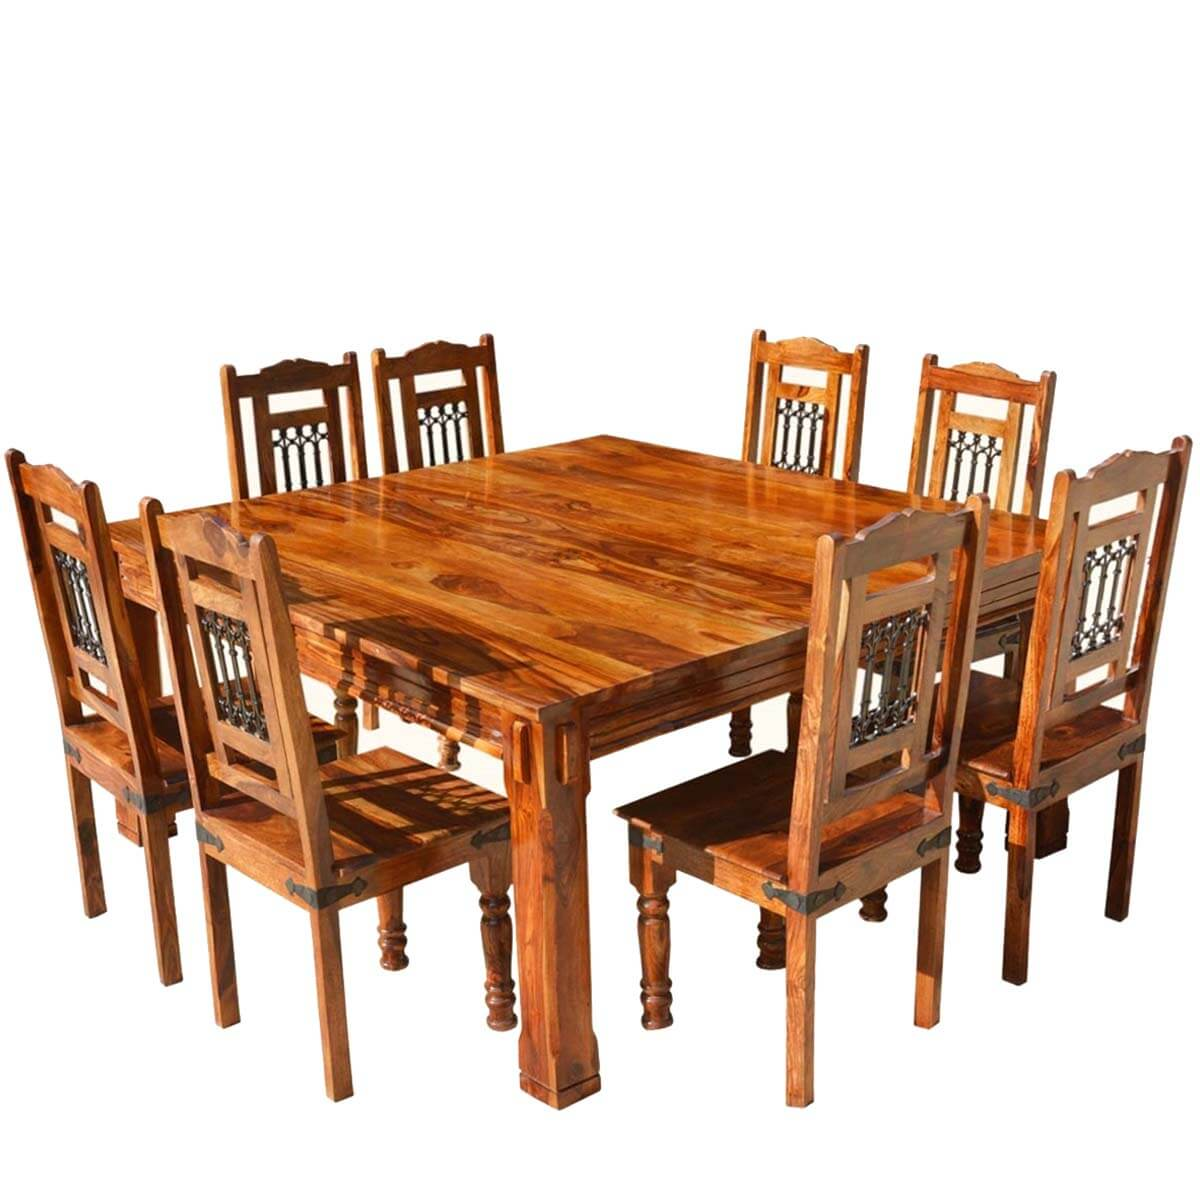 Transitional solid wood rustic square dining table chairs set for Square dinette sets